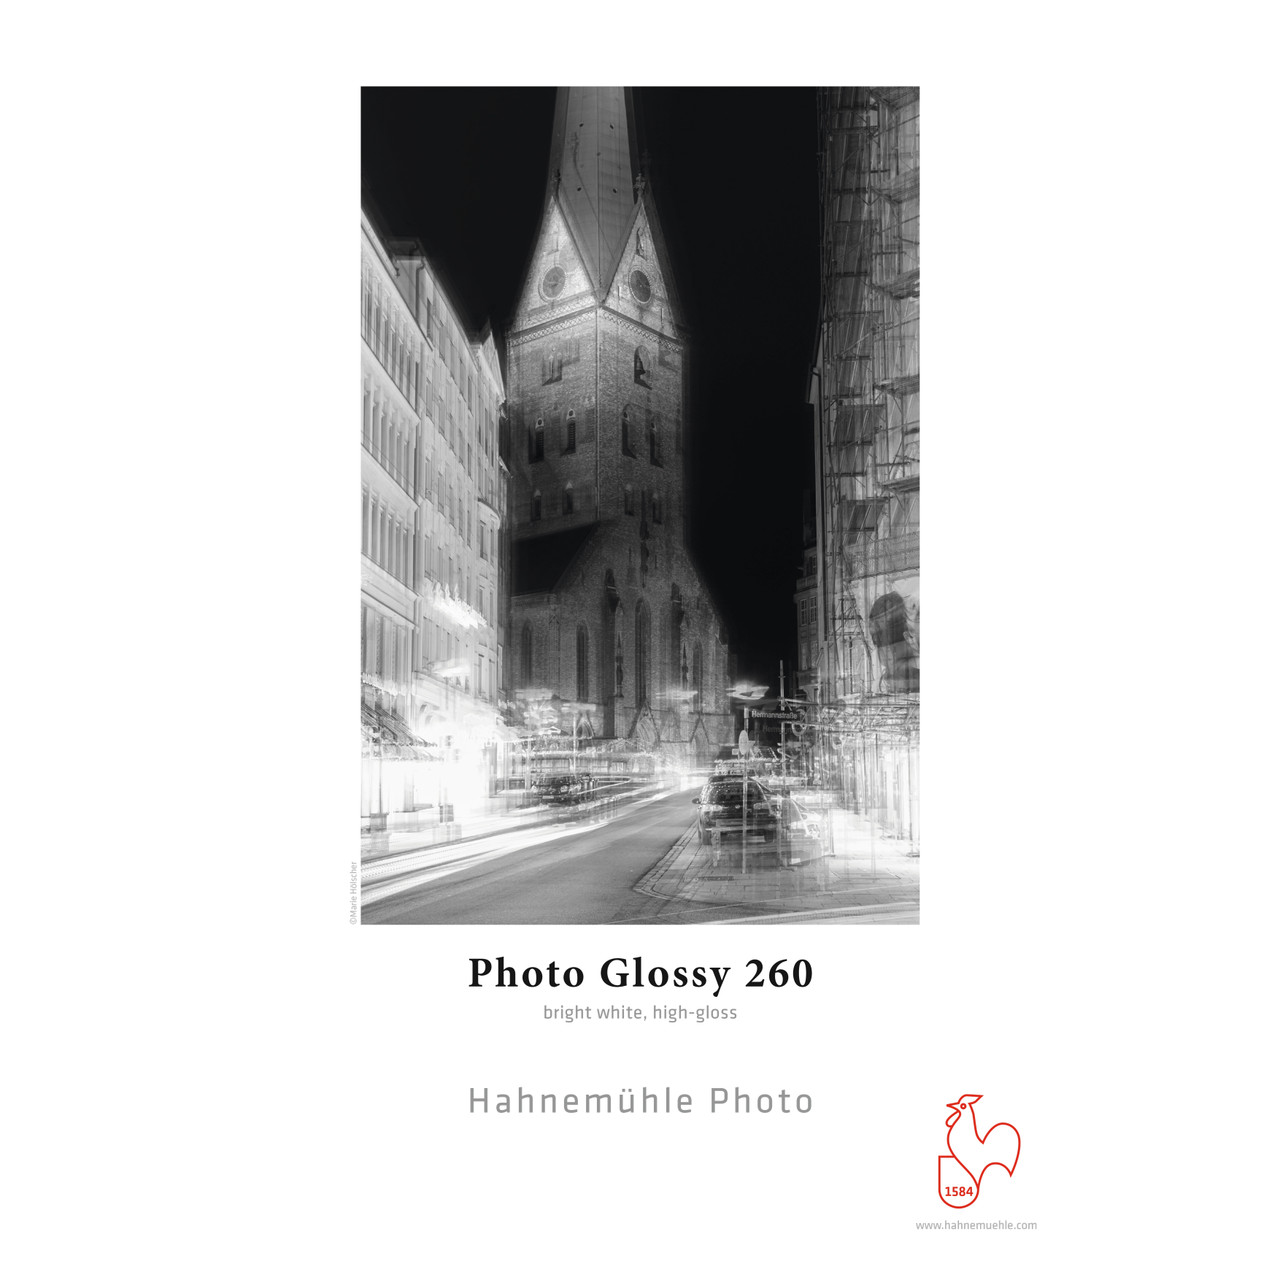 HAHNEMÜHLE PHOTO GLOSSY PAPER (25 SHEETS)